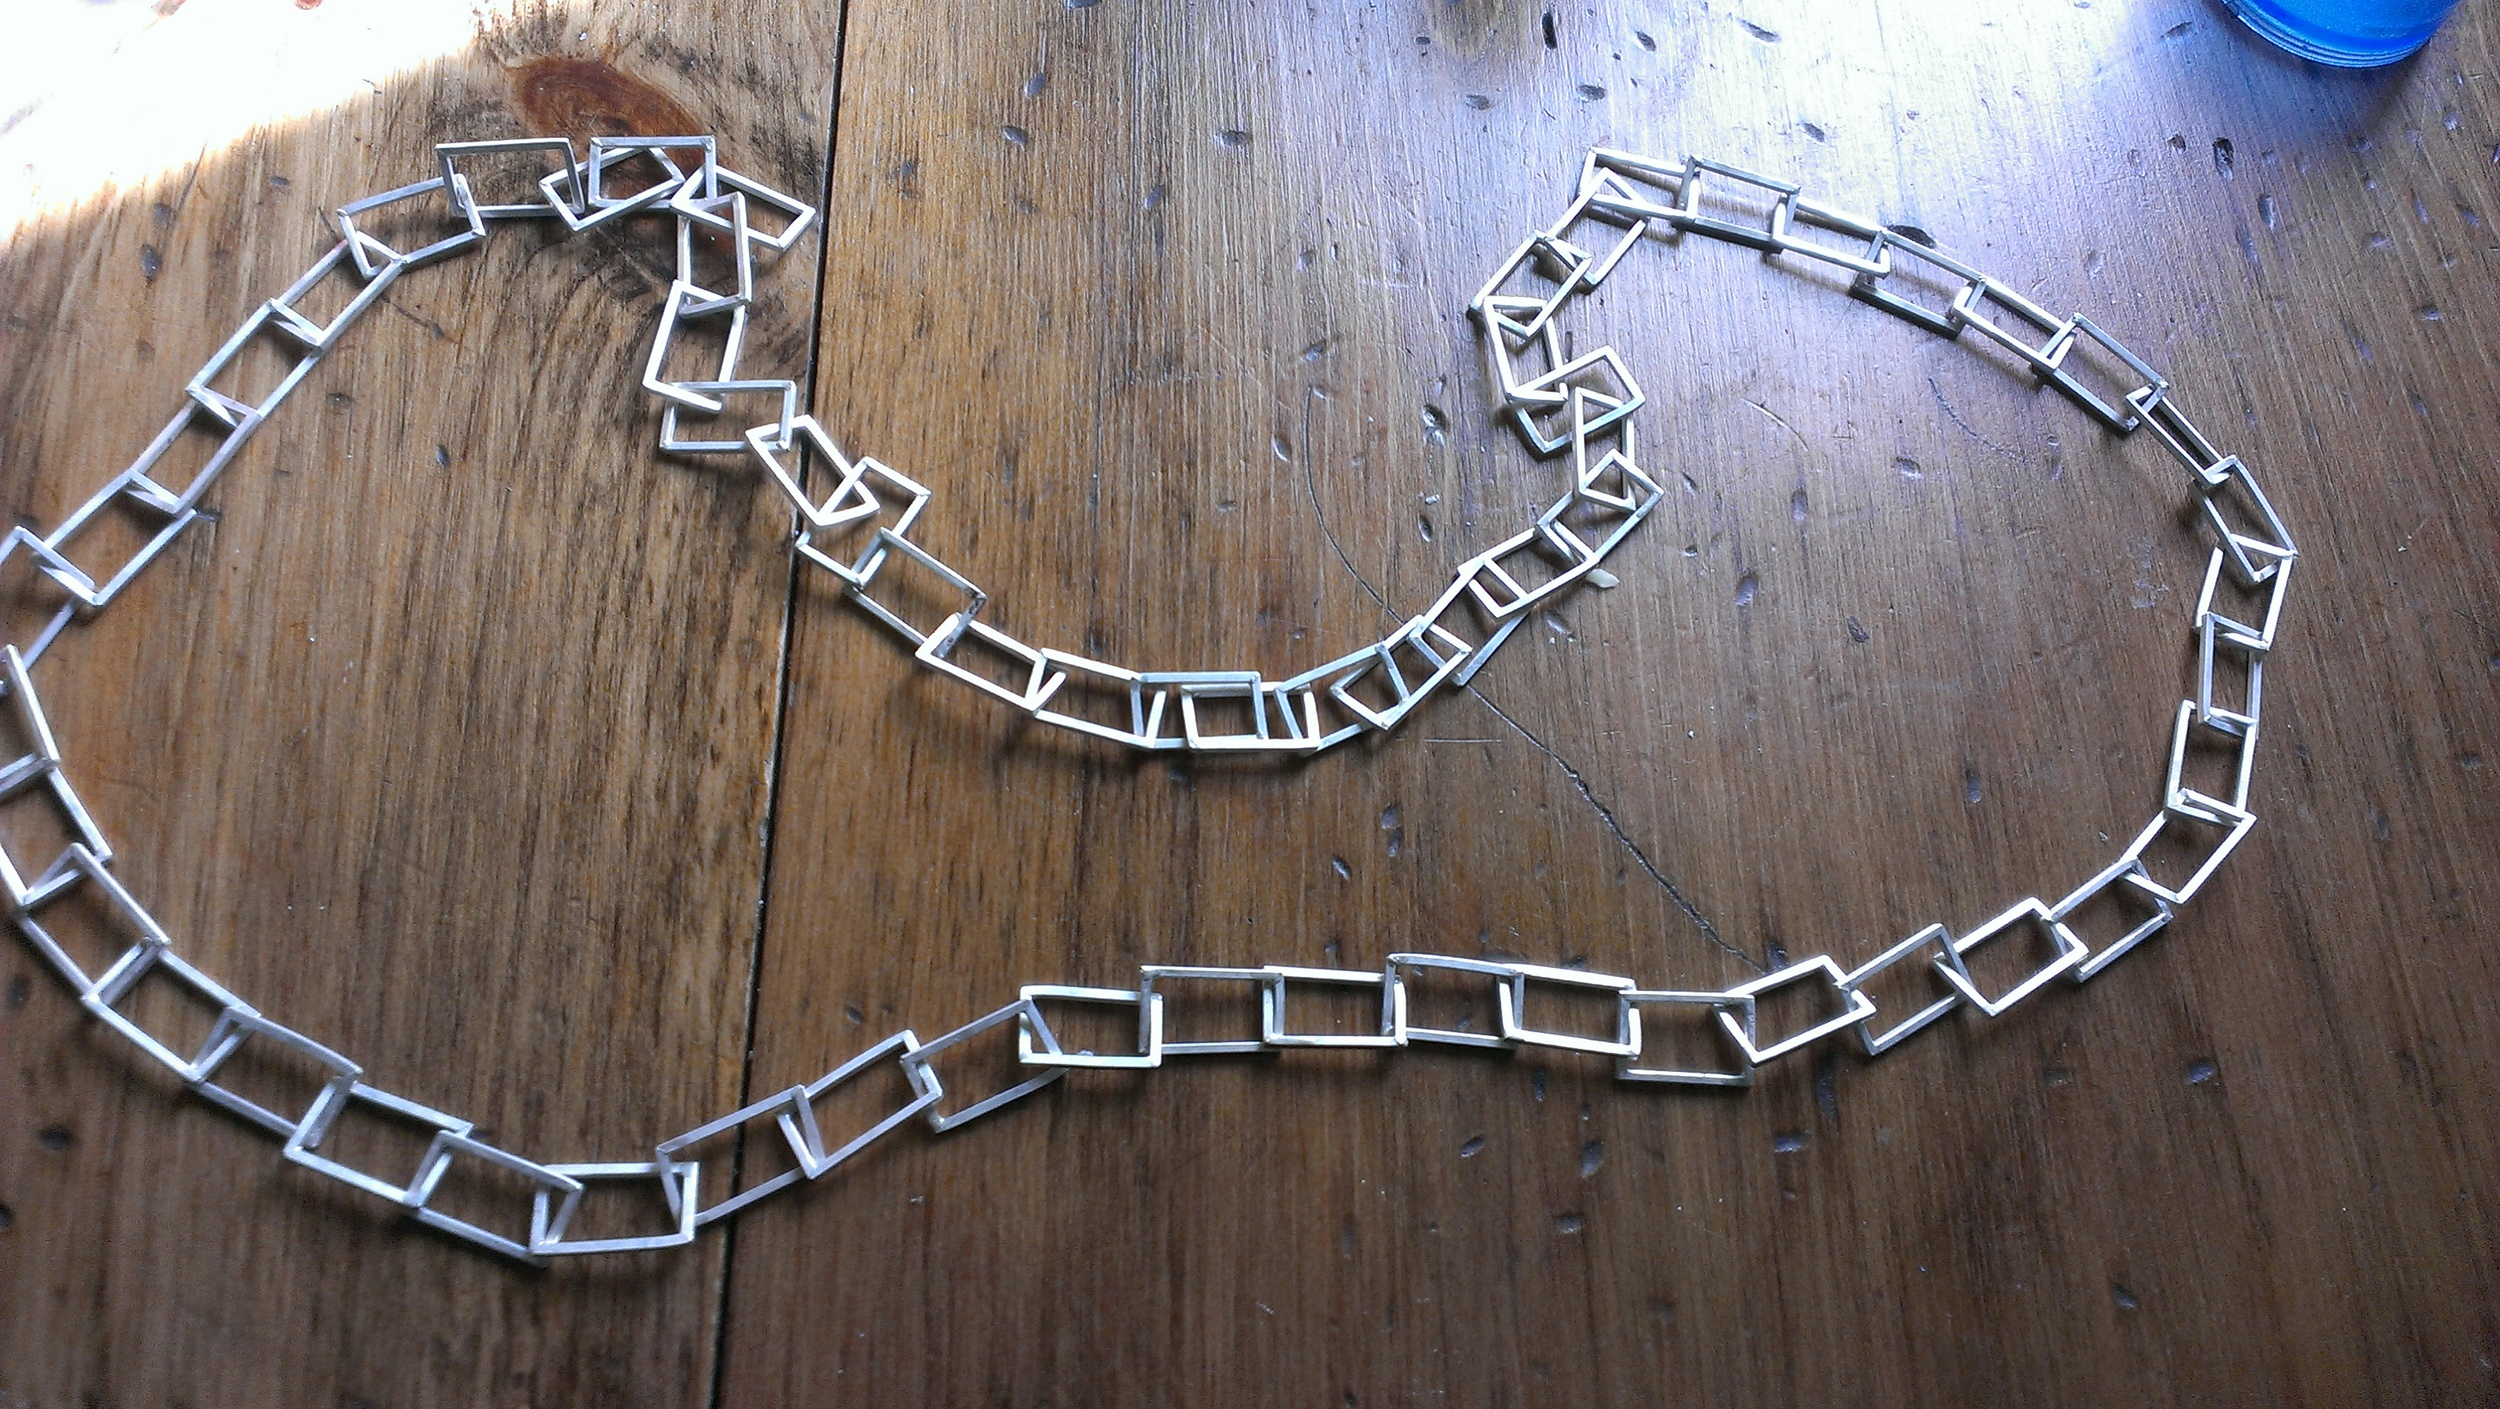 All the links fully assembled.